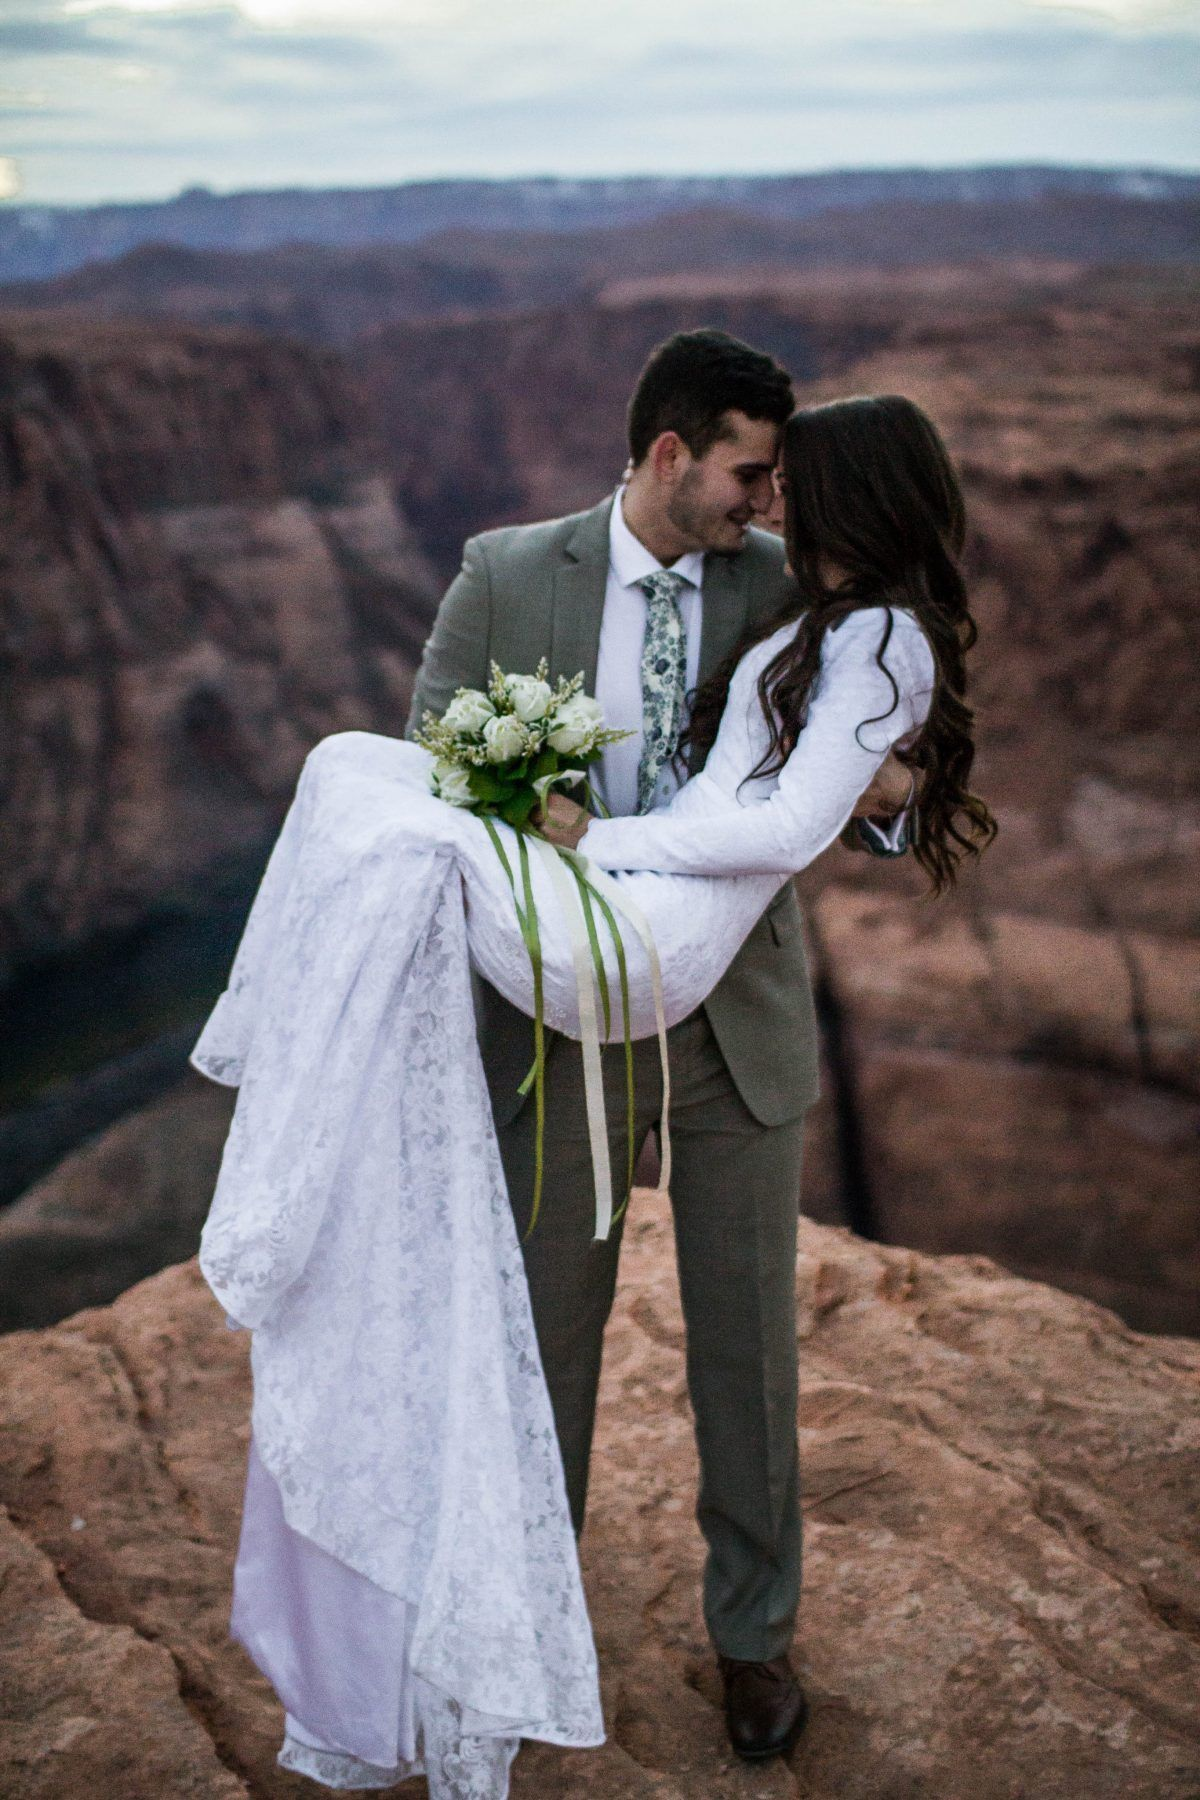 This couple got engaged at the Grand Canyon and they even took